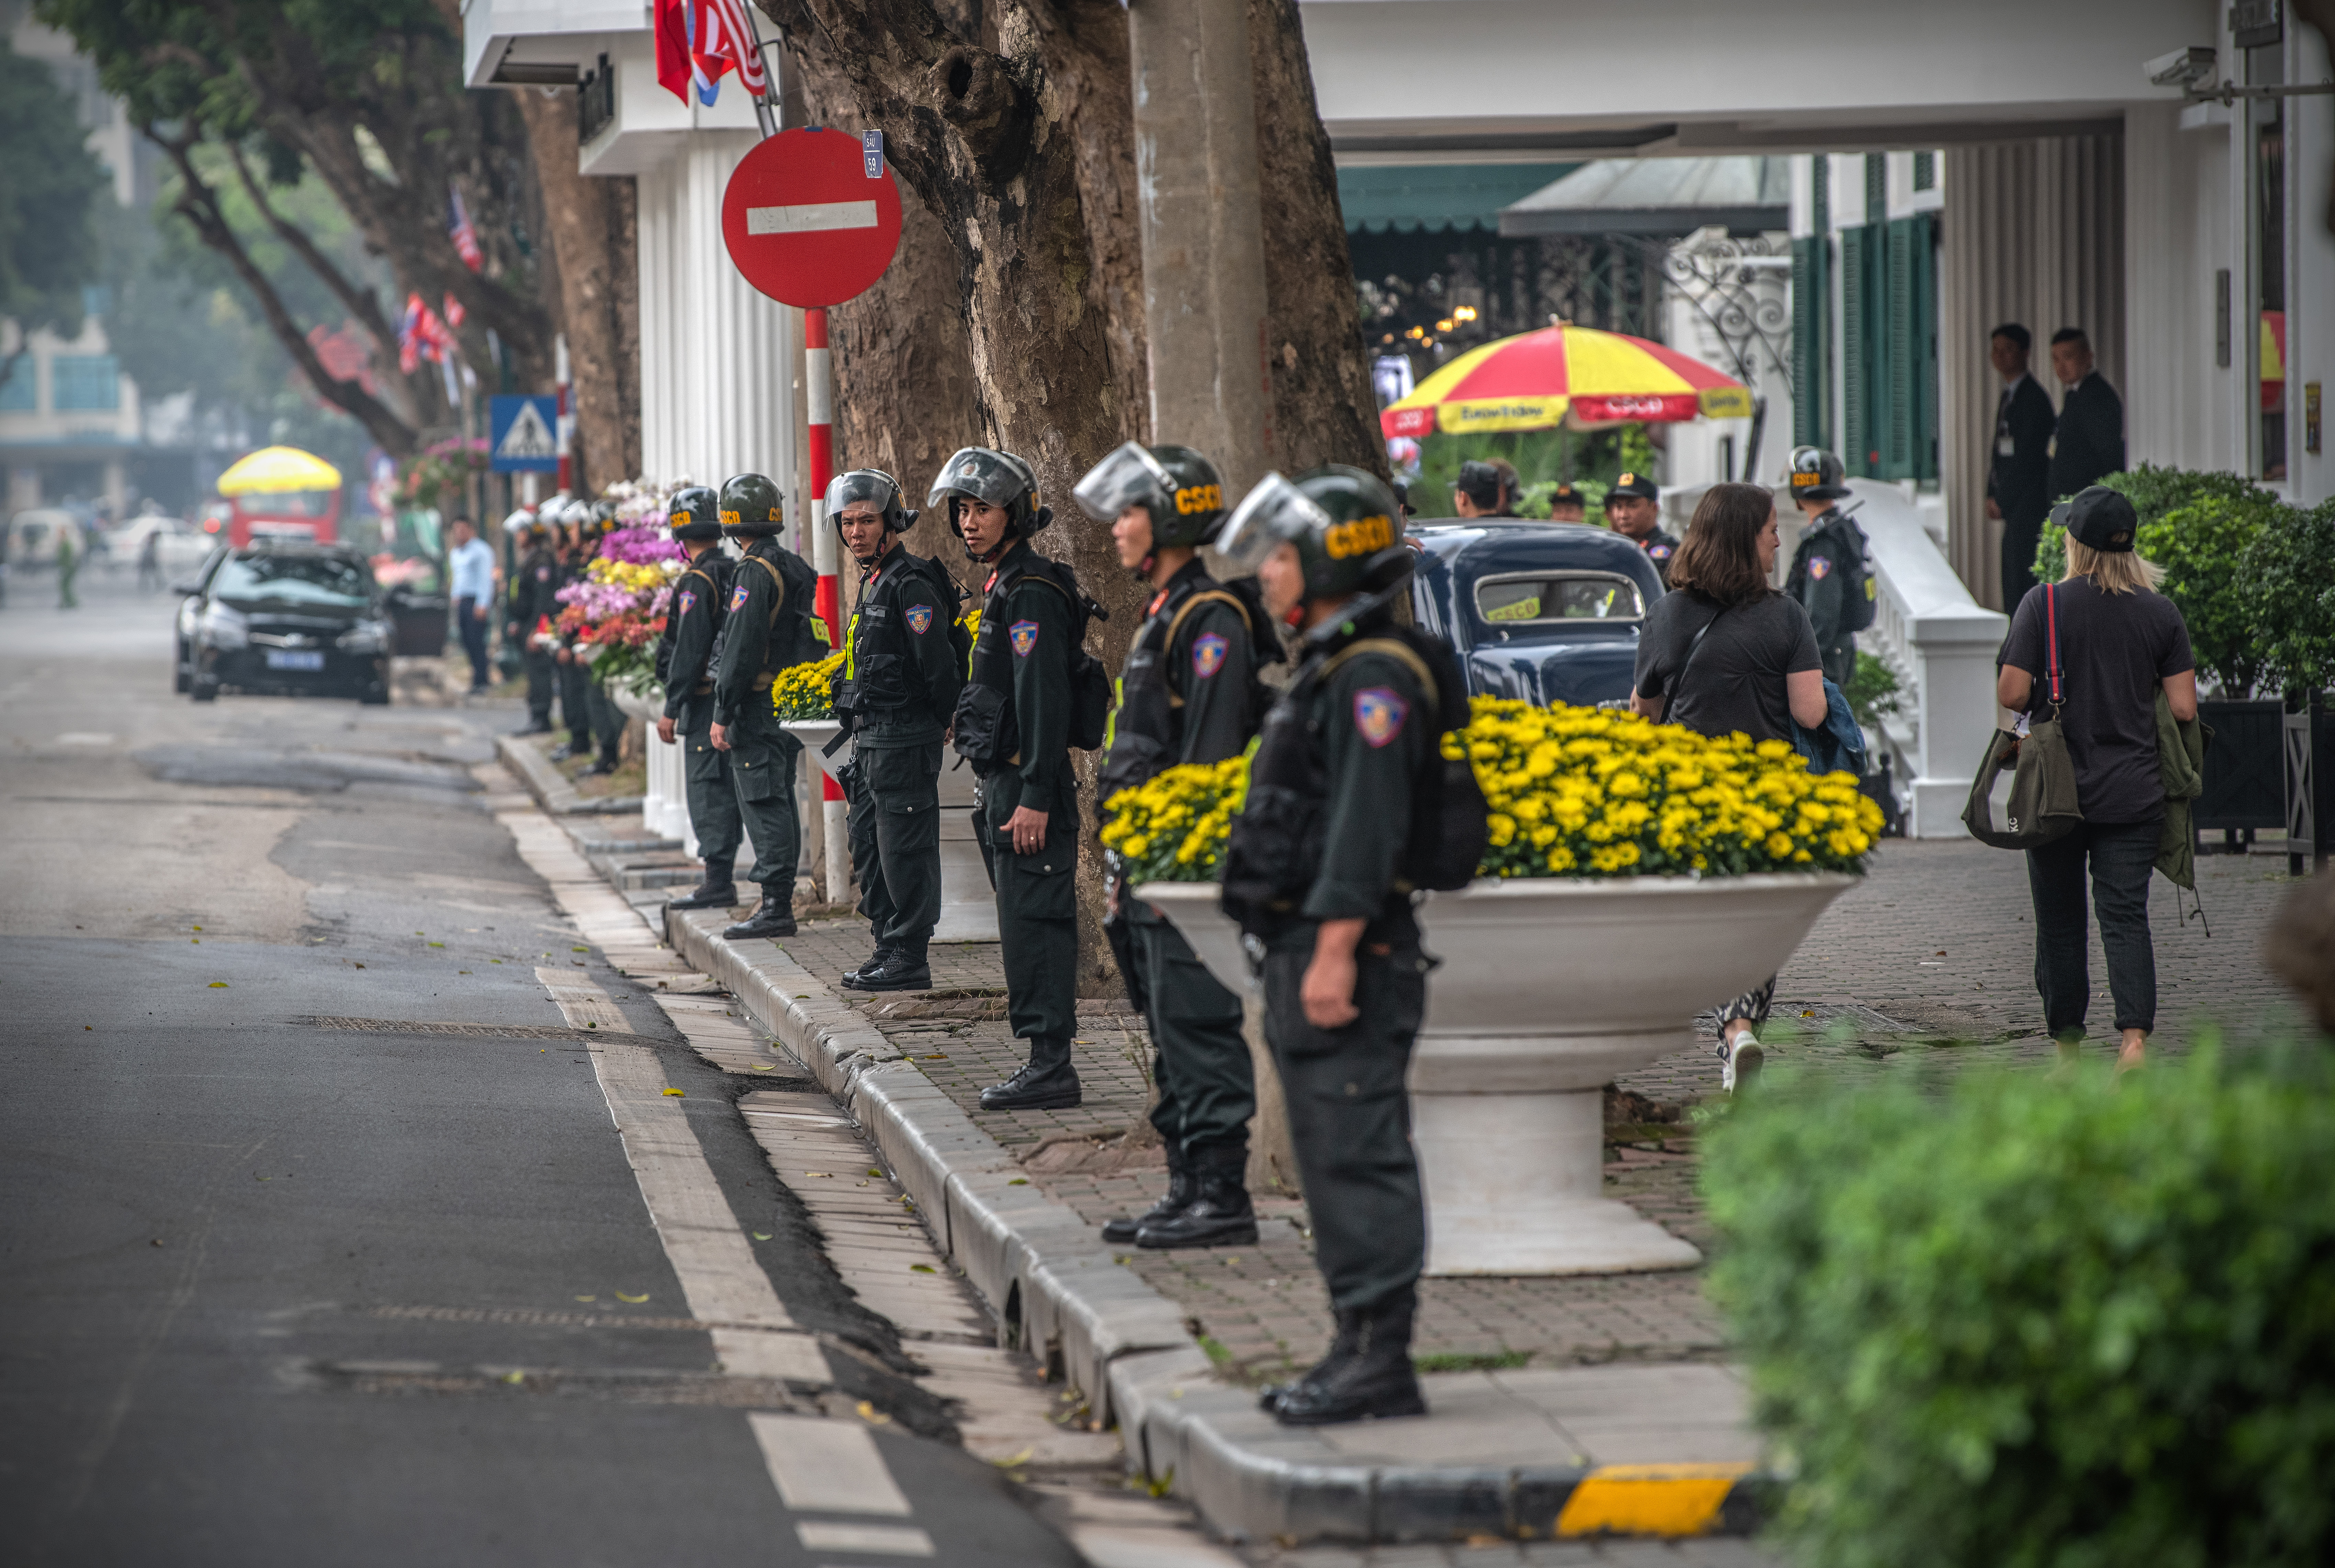 Police officers line up outside the Hotel Metropole in Hanoi where Kim and Trump will meet again on Thursday.